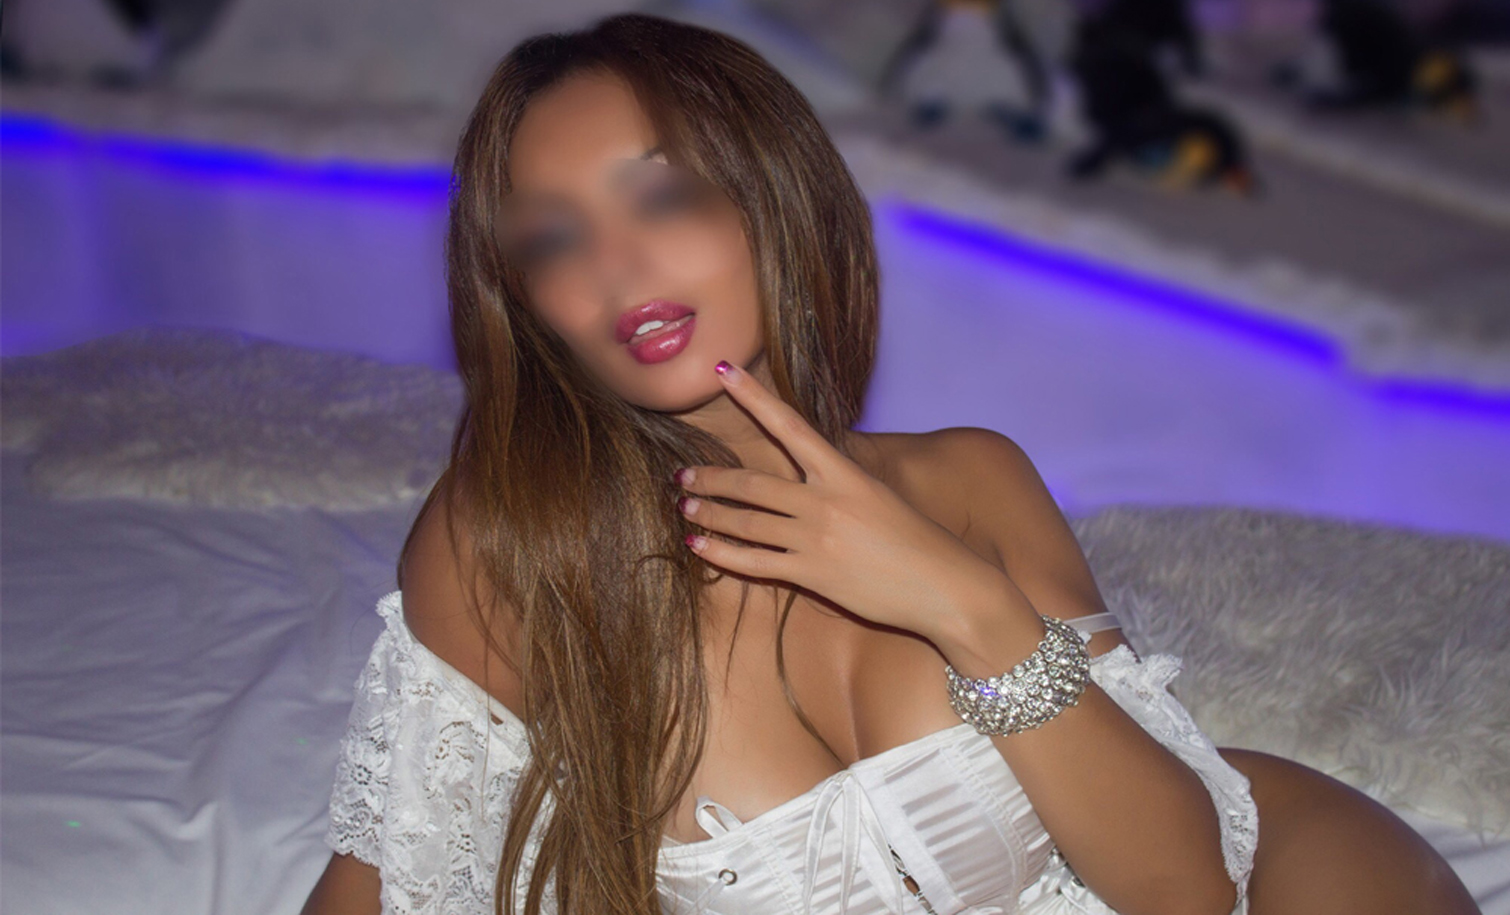 video gay français tarif escort girl